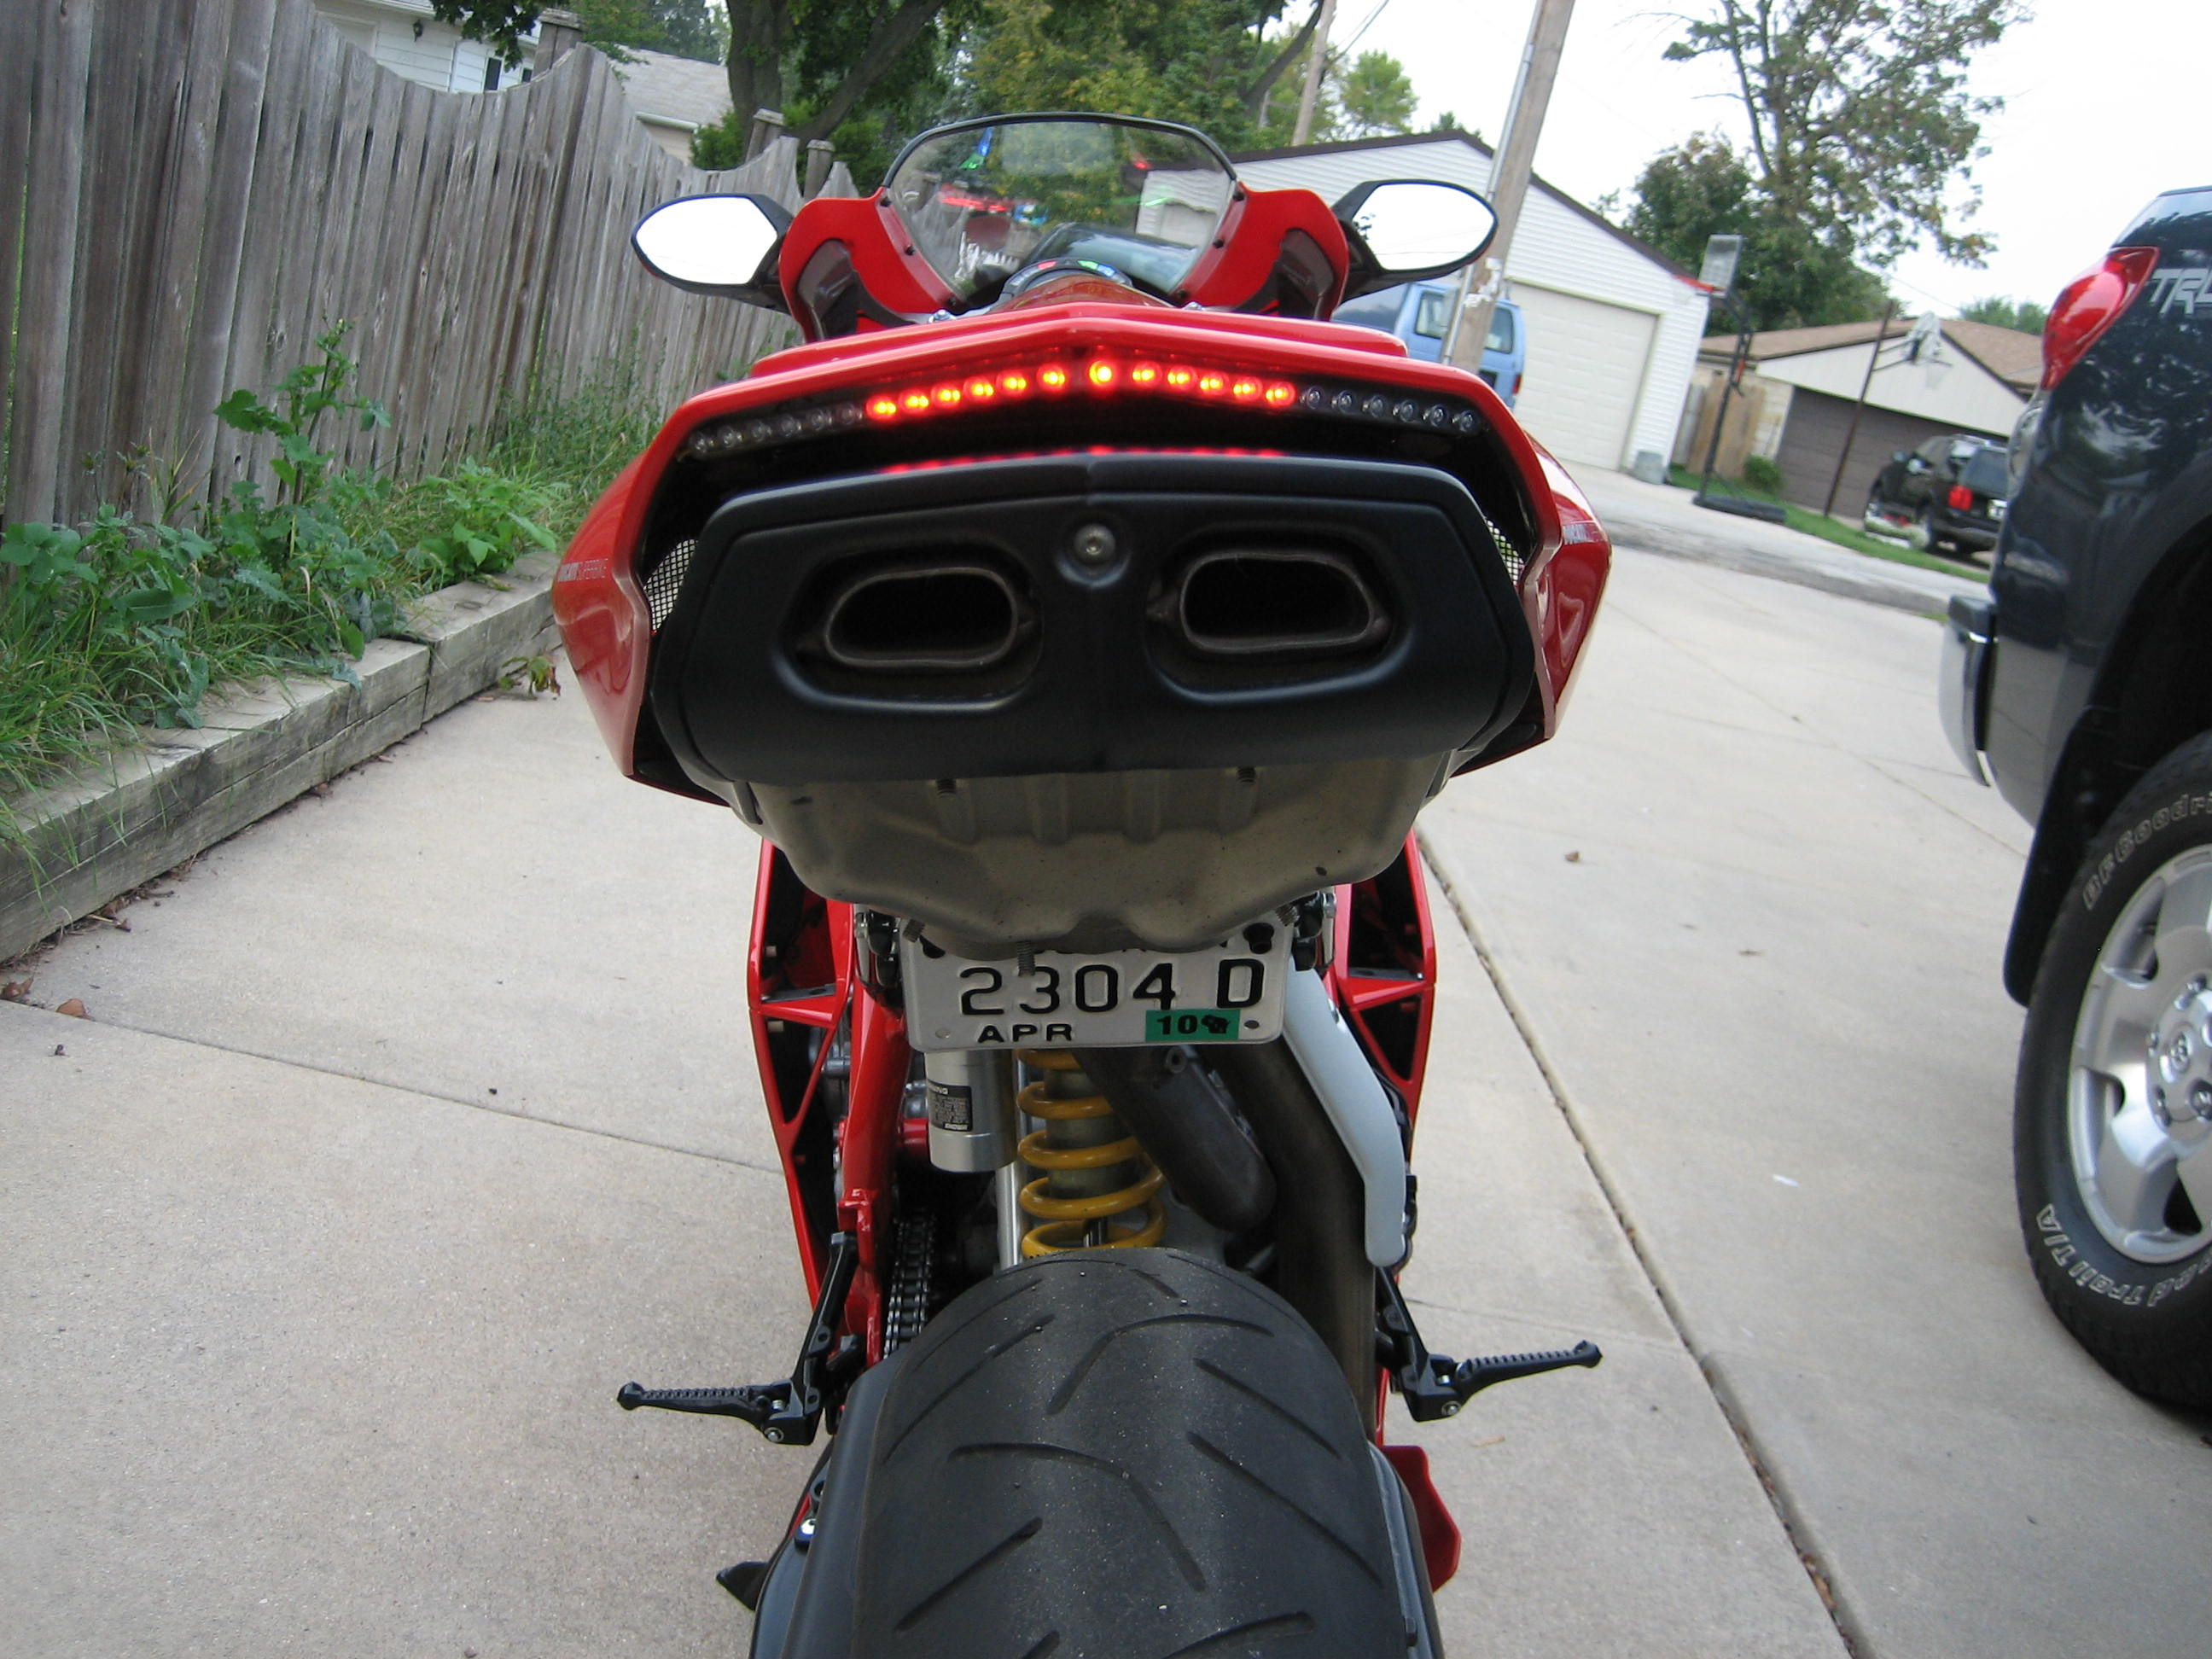 Custom LED Tail Light And License Plate Bracket Installed Today - Ducati 999 tail light wiring